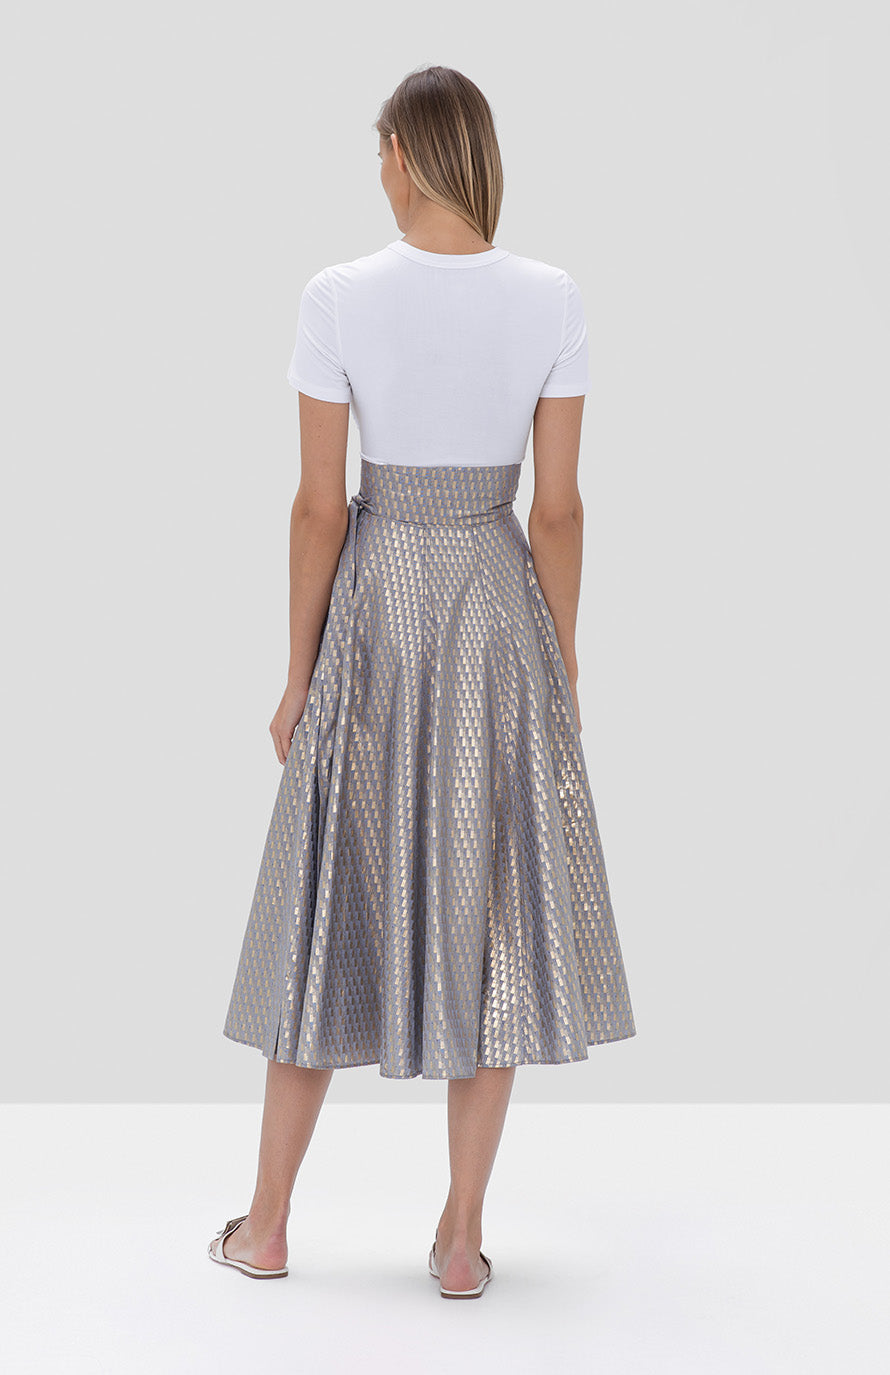 Eugenie Skirt Blue Gold Soli top white - Rear View